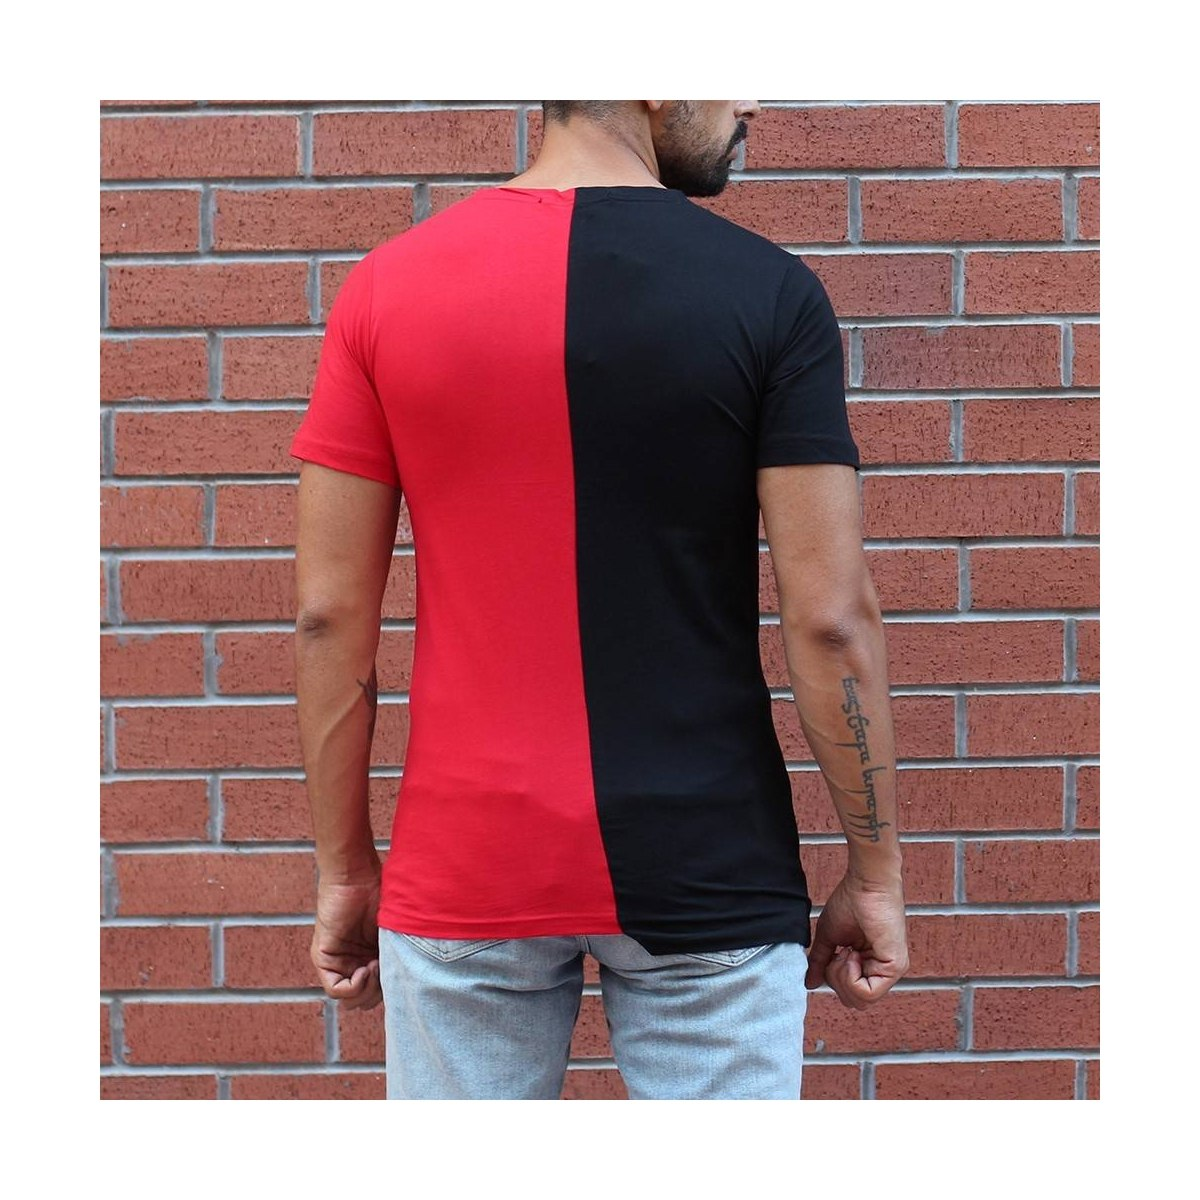 Men's Round Neck Split Color T-Shirt Black&Red MV Brand - 1